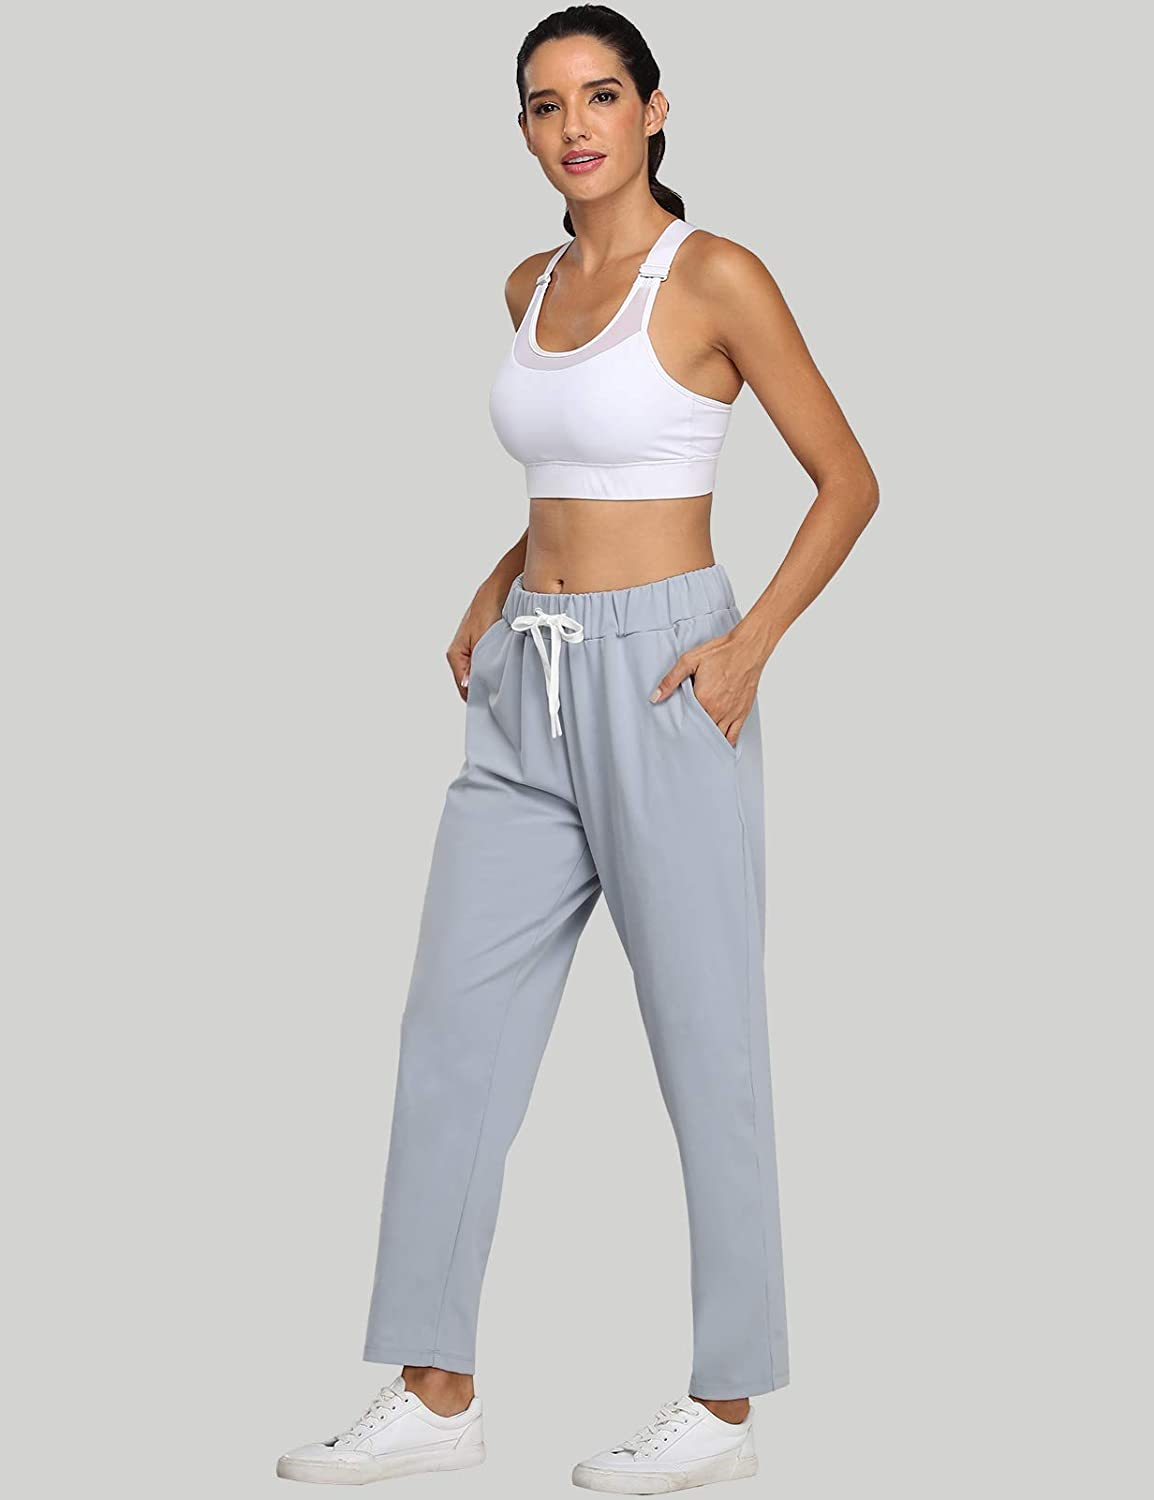 ZUTY Womens Stretch 7//8 Casual Pants with Pockets Loose Fit Drawstring Sweatpants Workout Joggers Travel Ankle Track Pants